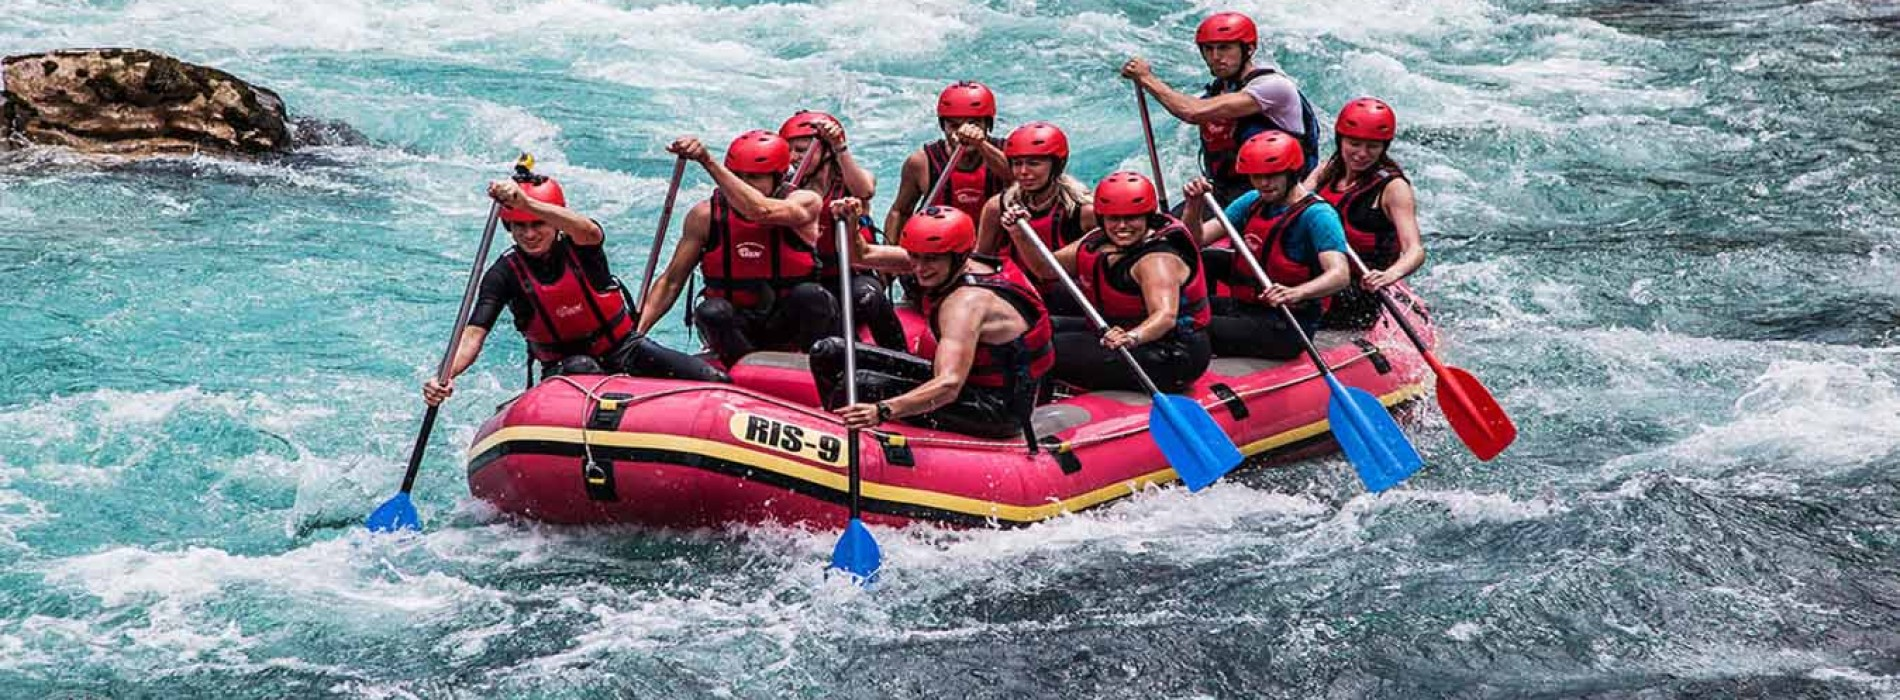 A better deal is needed for adventure tourism post HC's ban on water sports